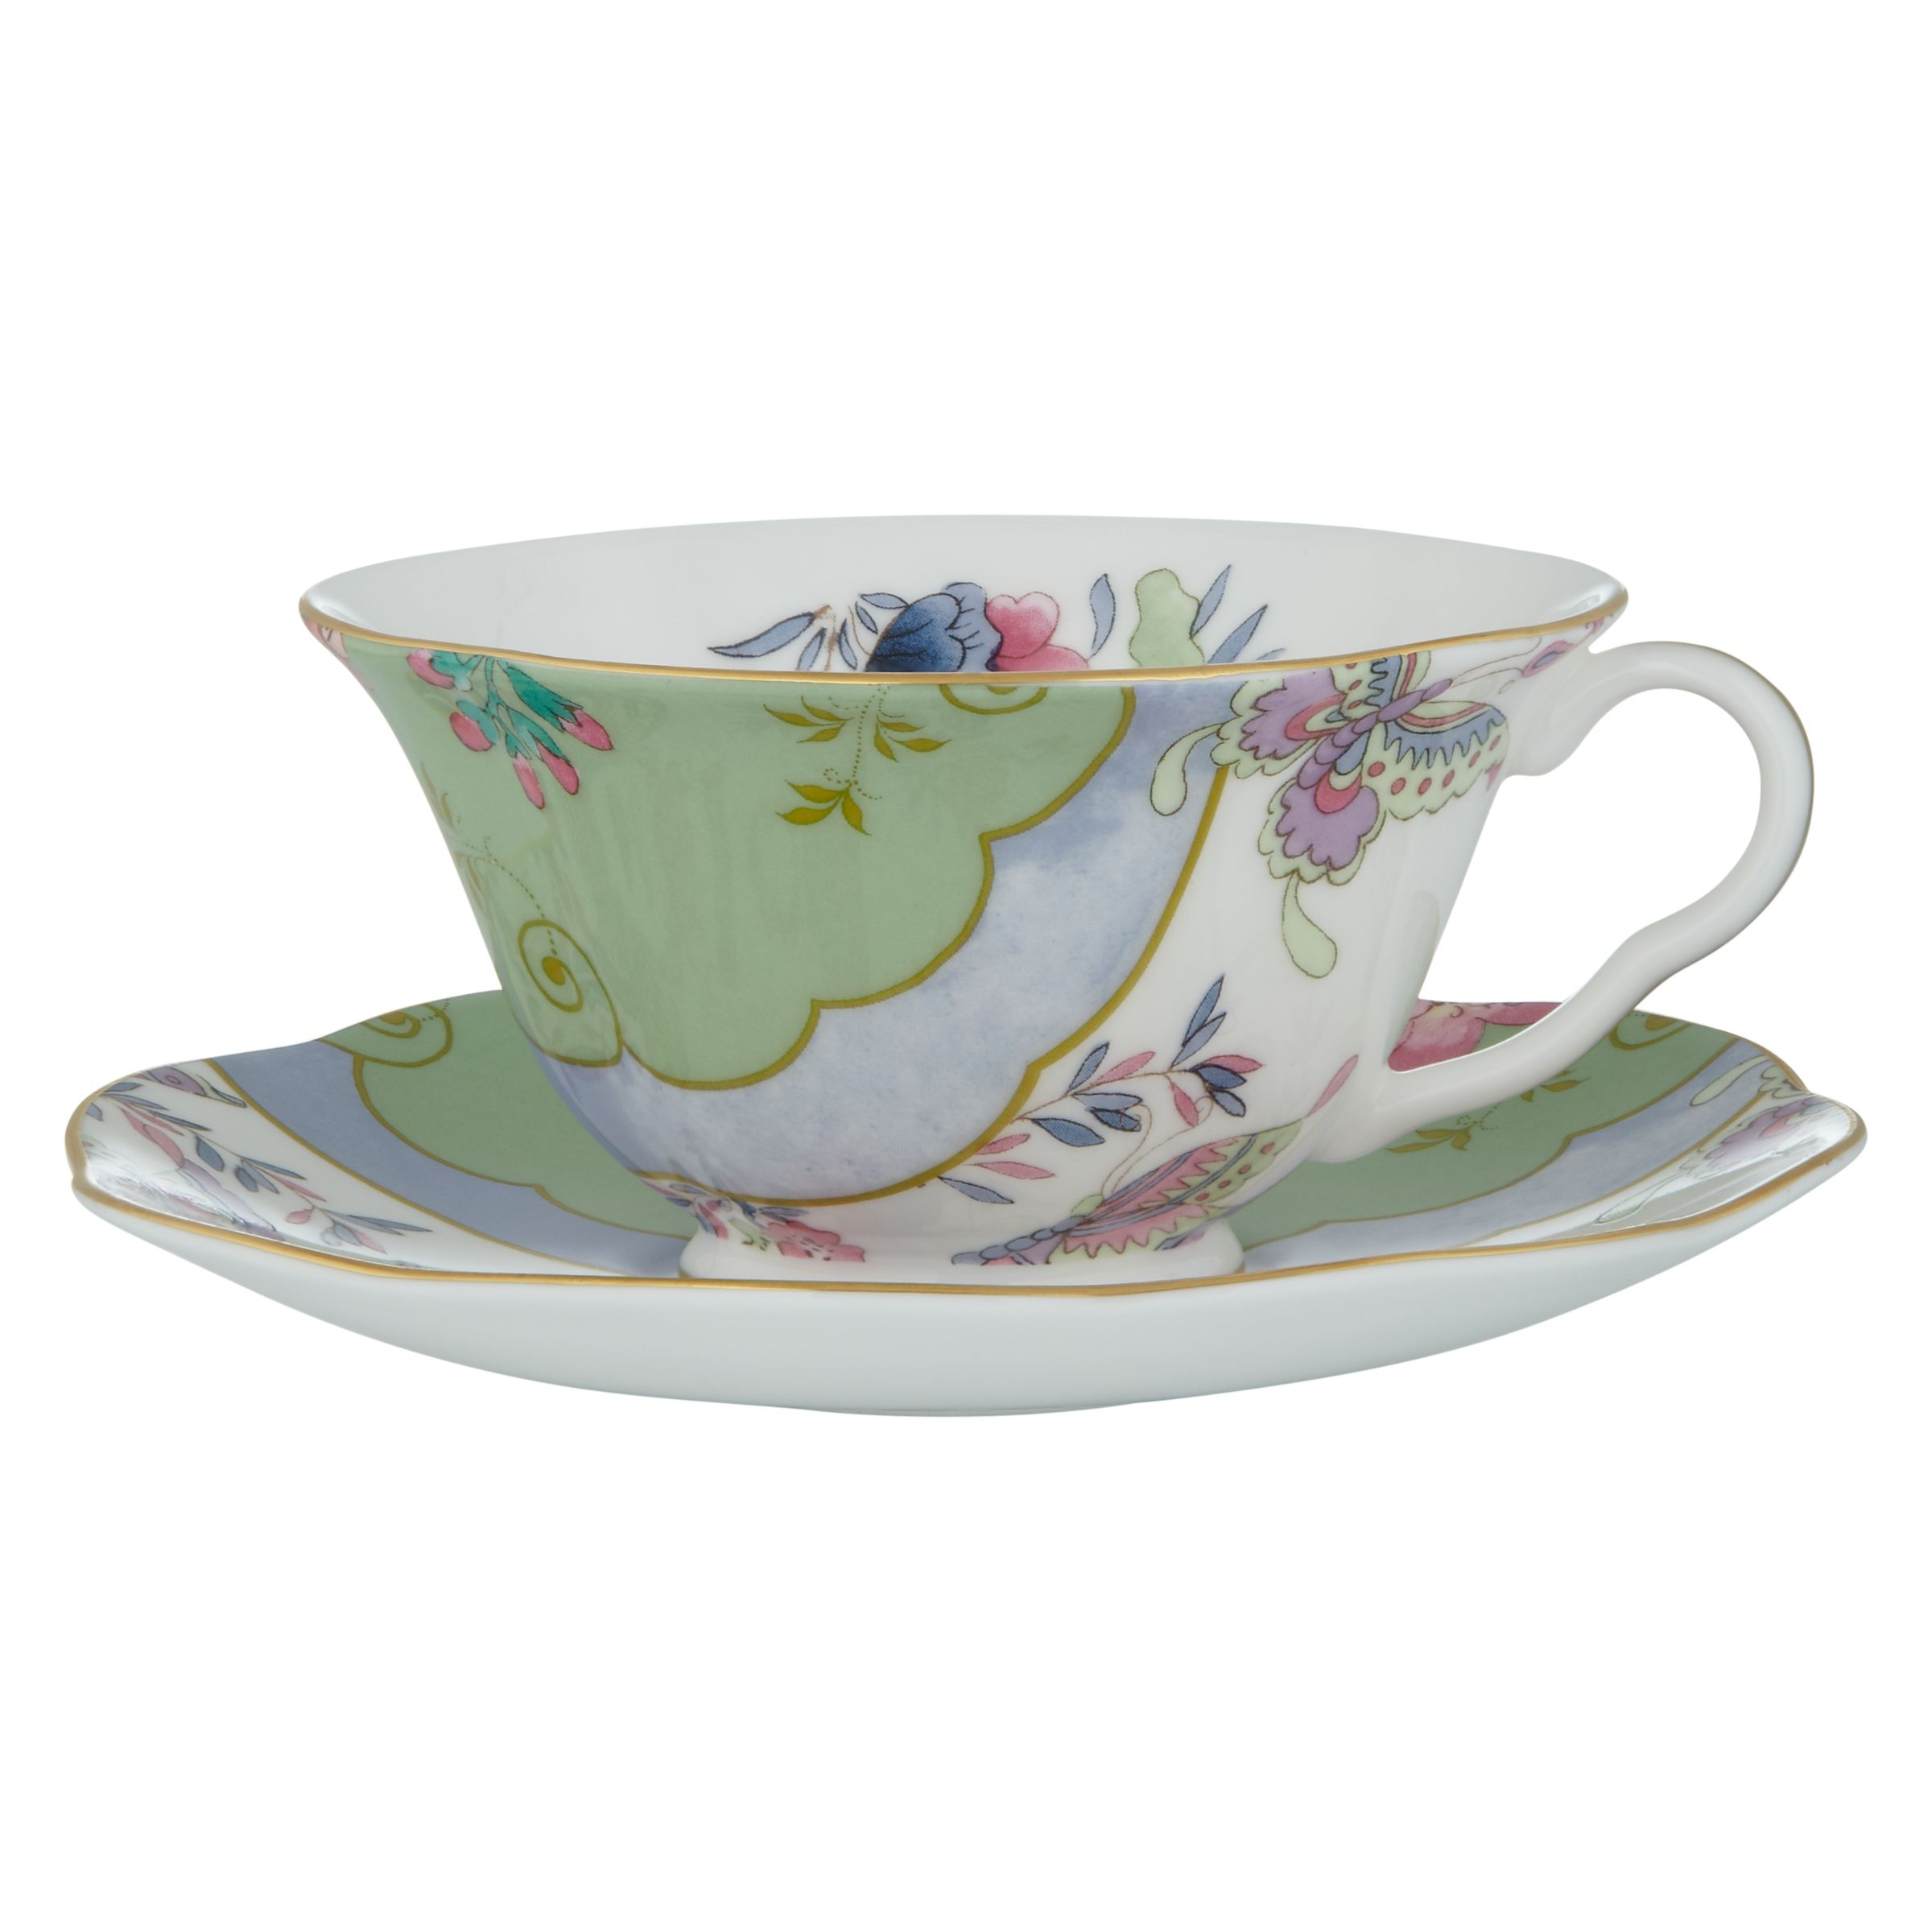 Wedgwood Wedgwood Butterfly Bloom Cup and Saucer Set, Green